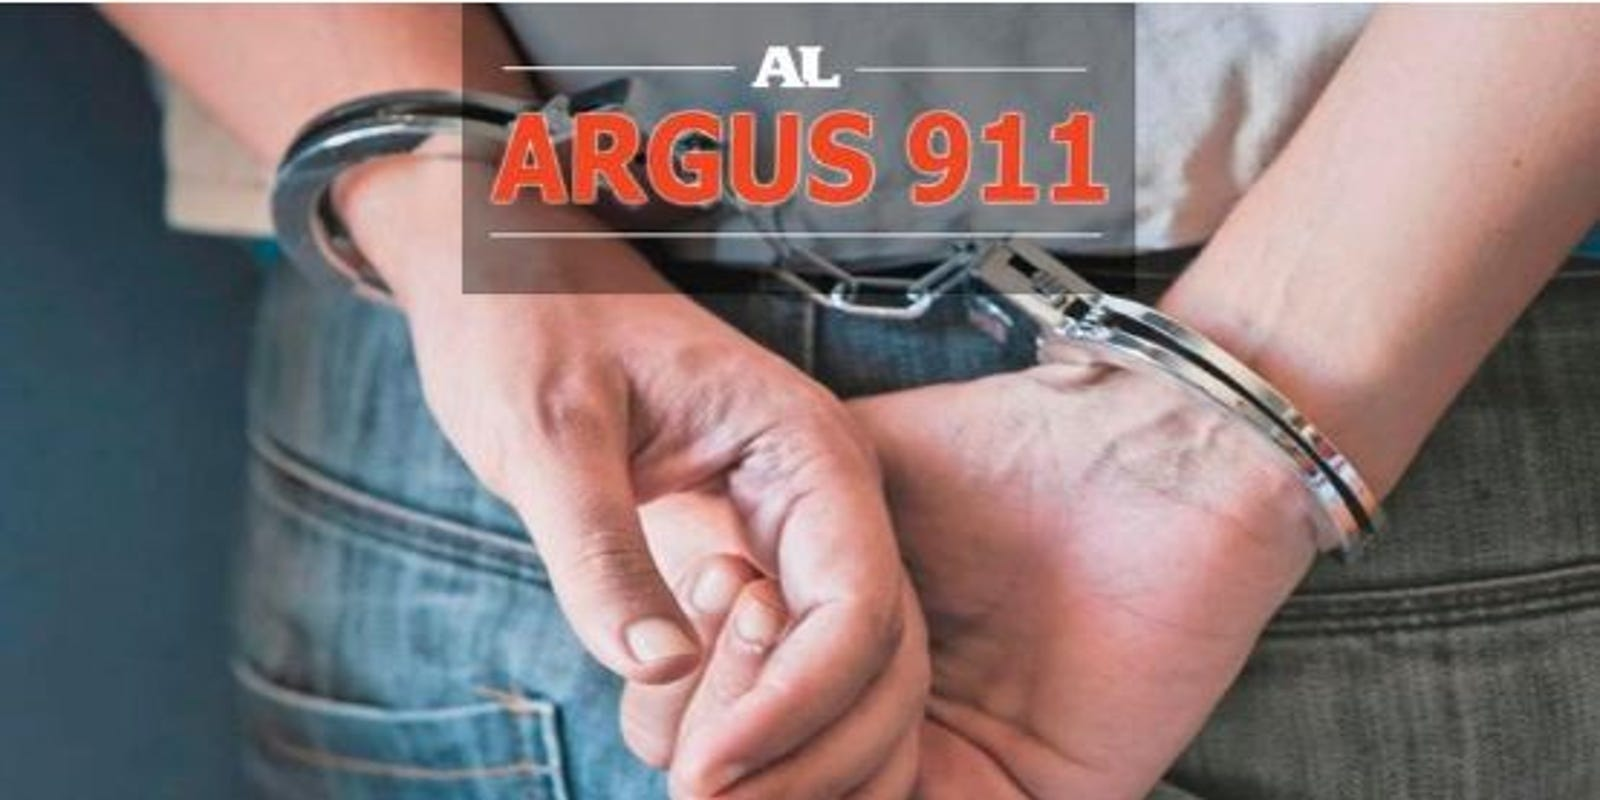 Aberdeen man arrested for making bomb threat